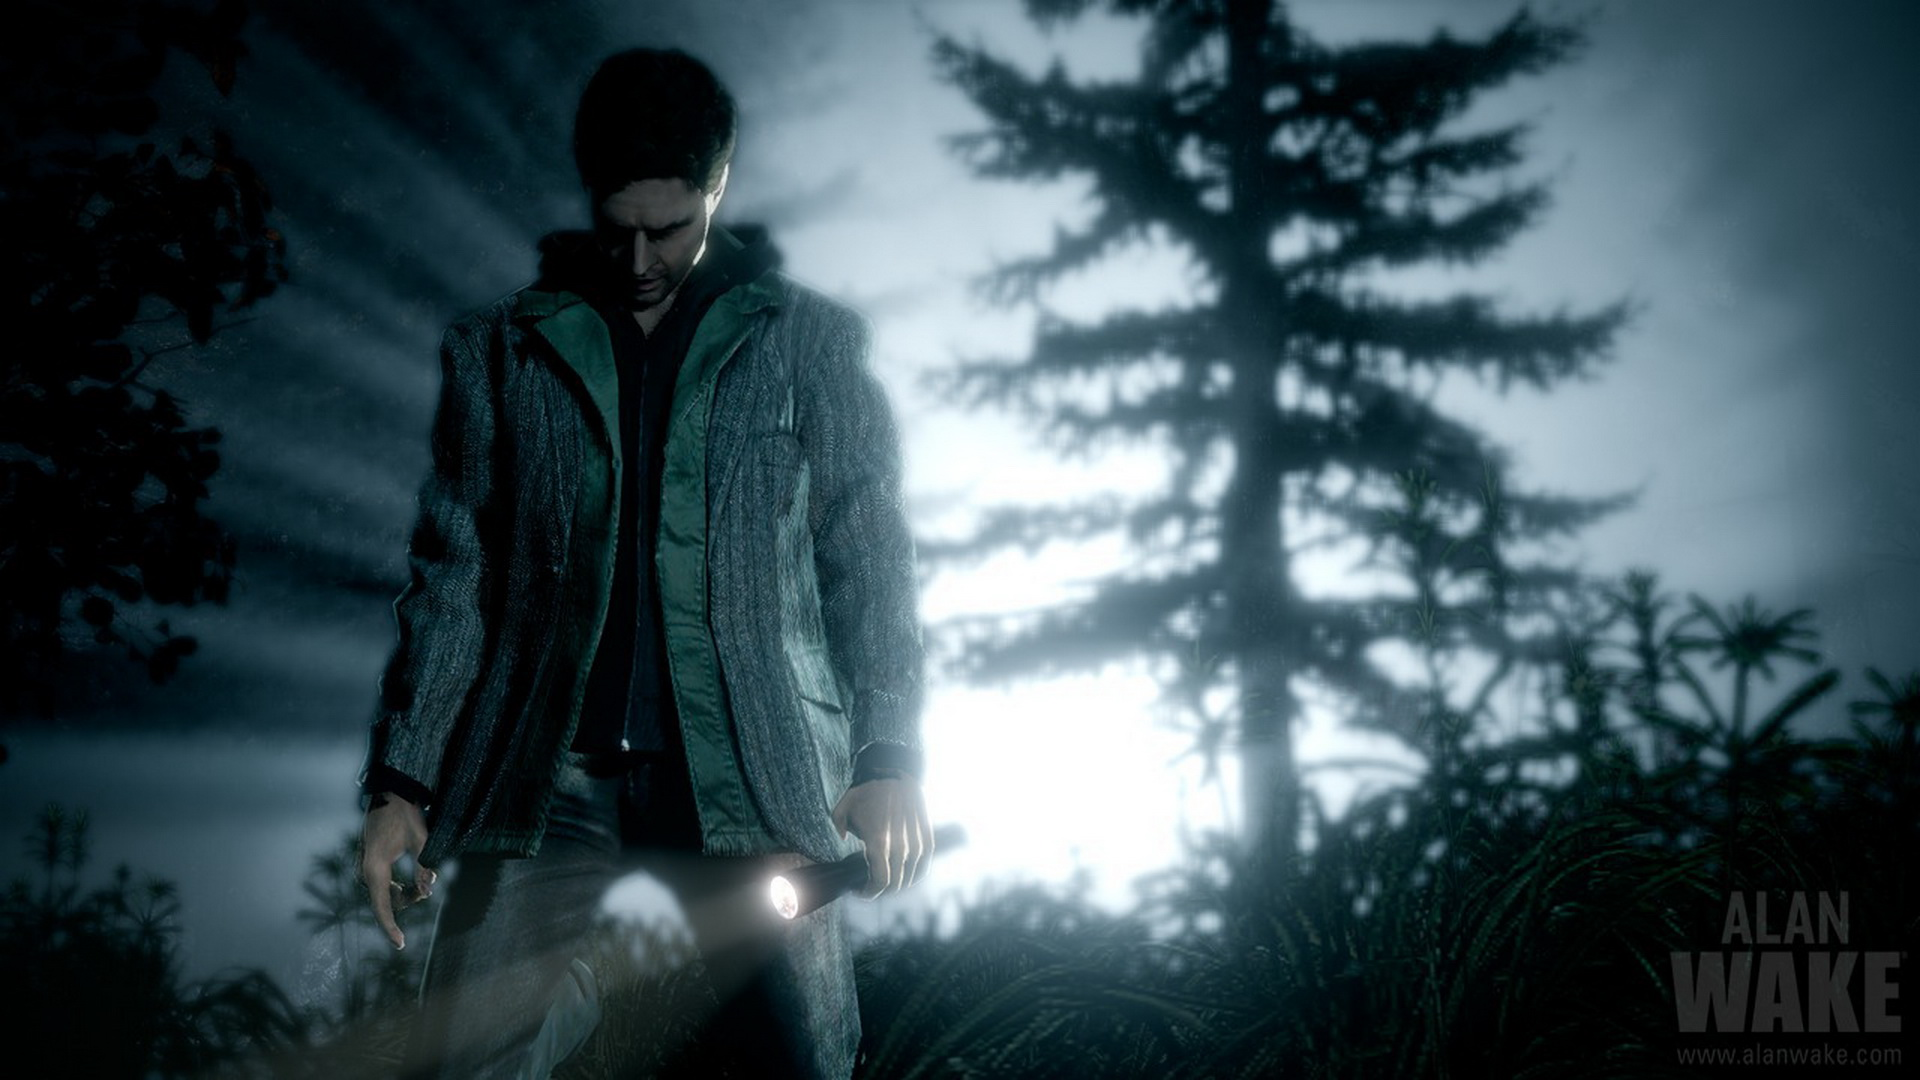 Alan Wake Backgrounds, Compatible - PC, Mobile, Gadgets| 1920x1080 px